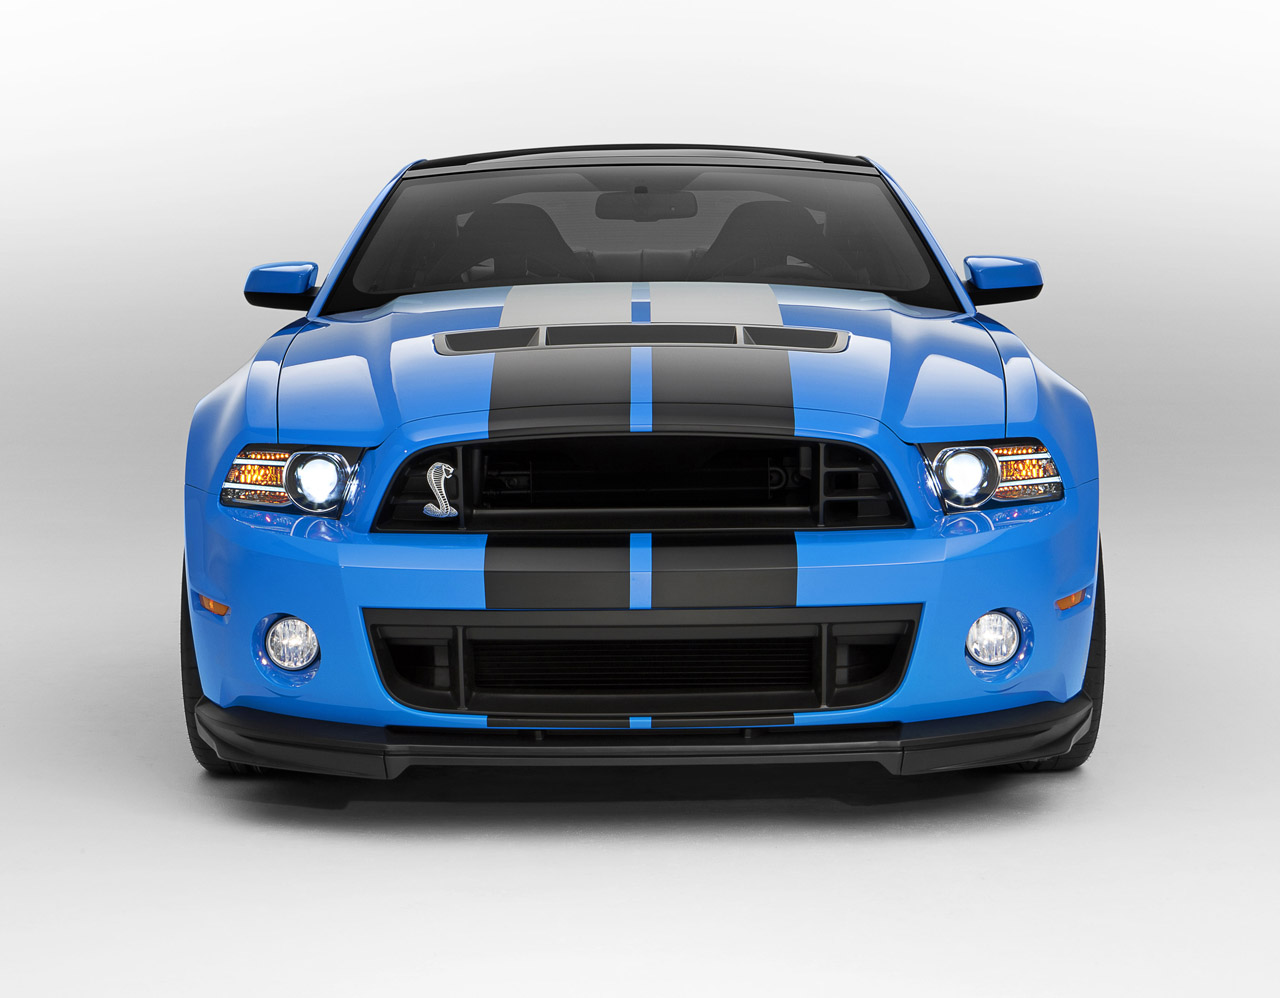 2013 Ford Shelby Mustang GT500 with 650HP and 200MPH